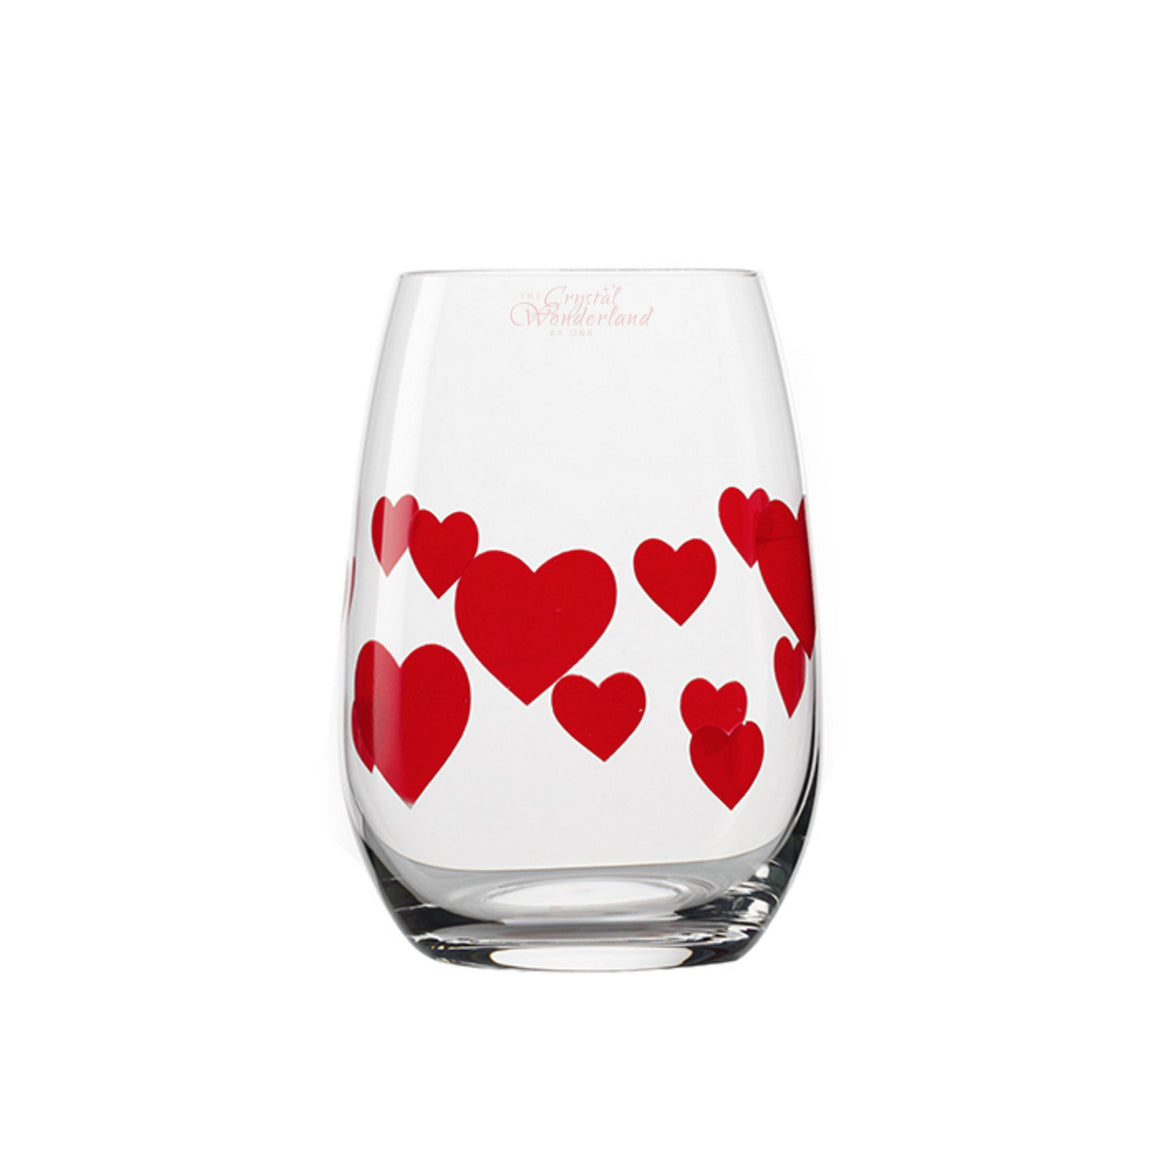 Glass Stemless Glasses Red Hearts, Set of 6 - The Crystal Wonderland - 1